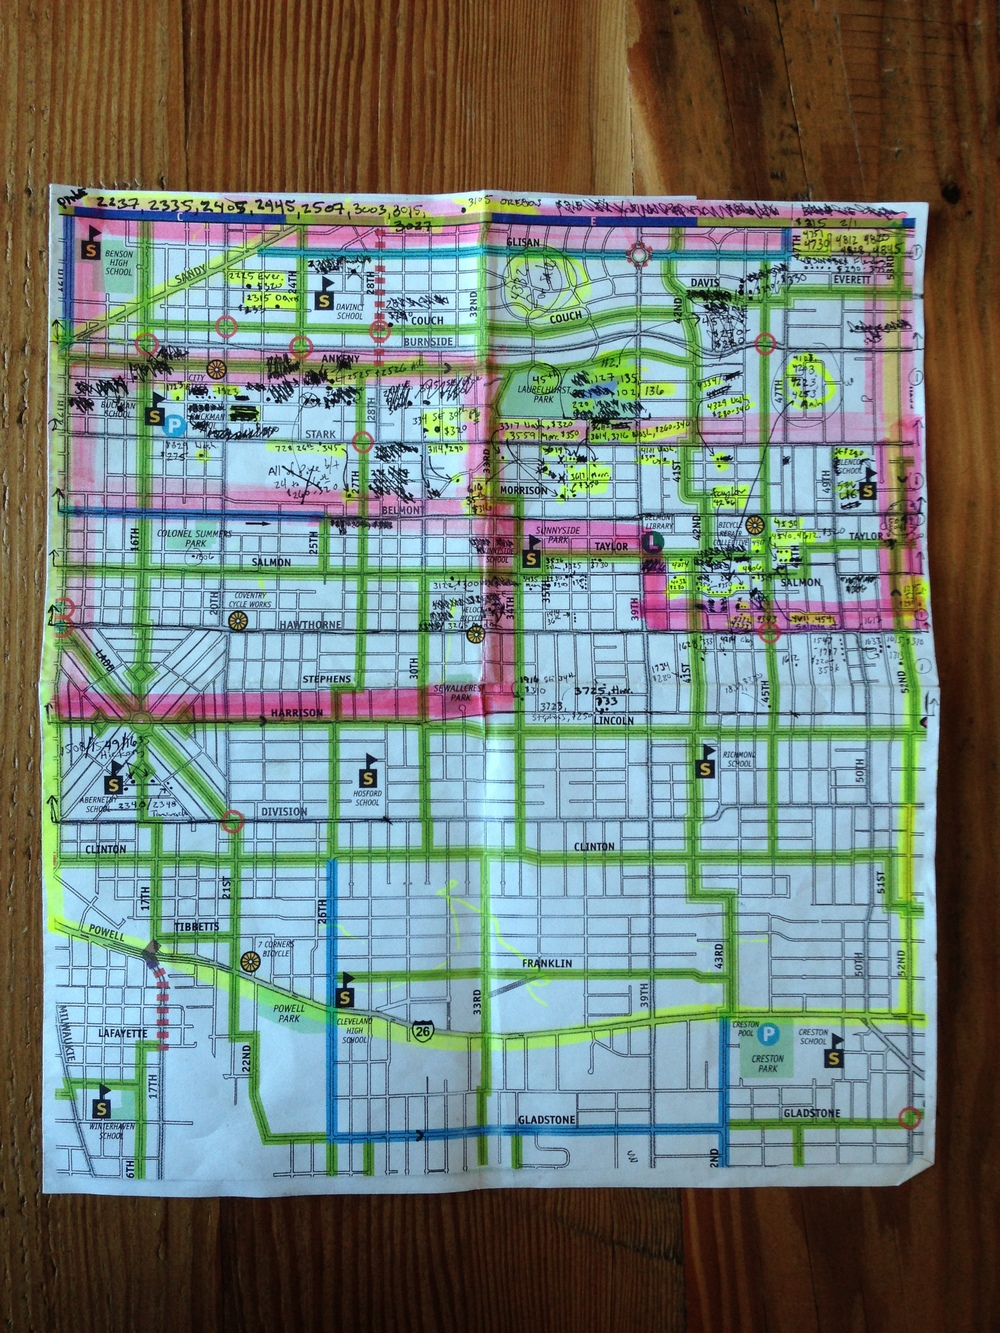 Brian & Laura's detailed map of their favorite neighborhoods!